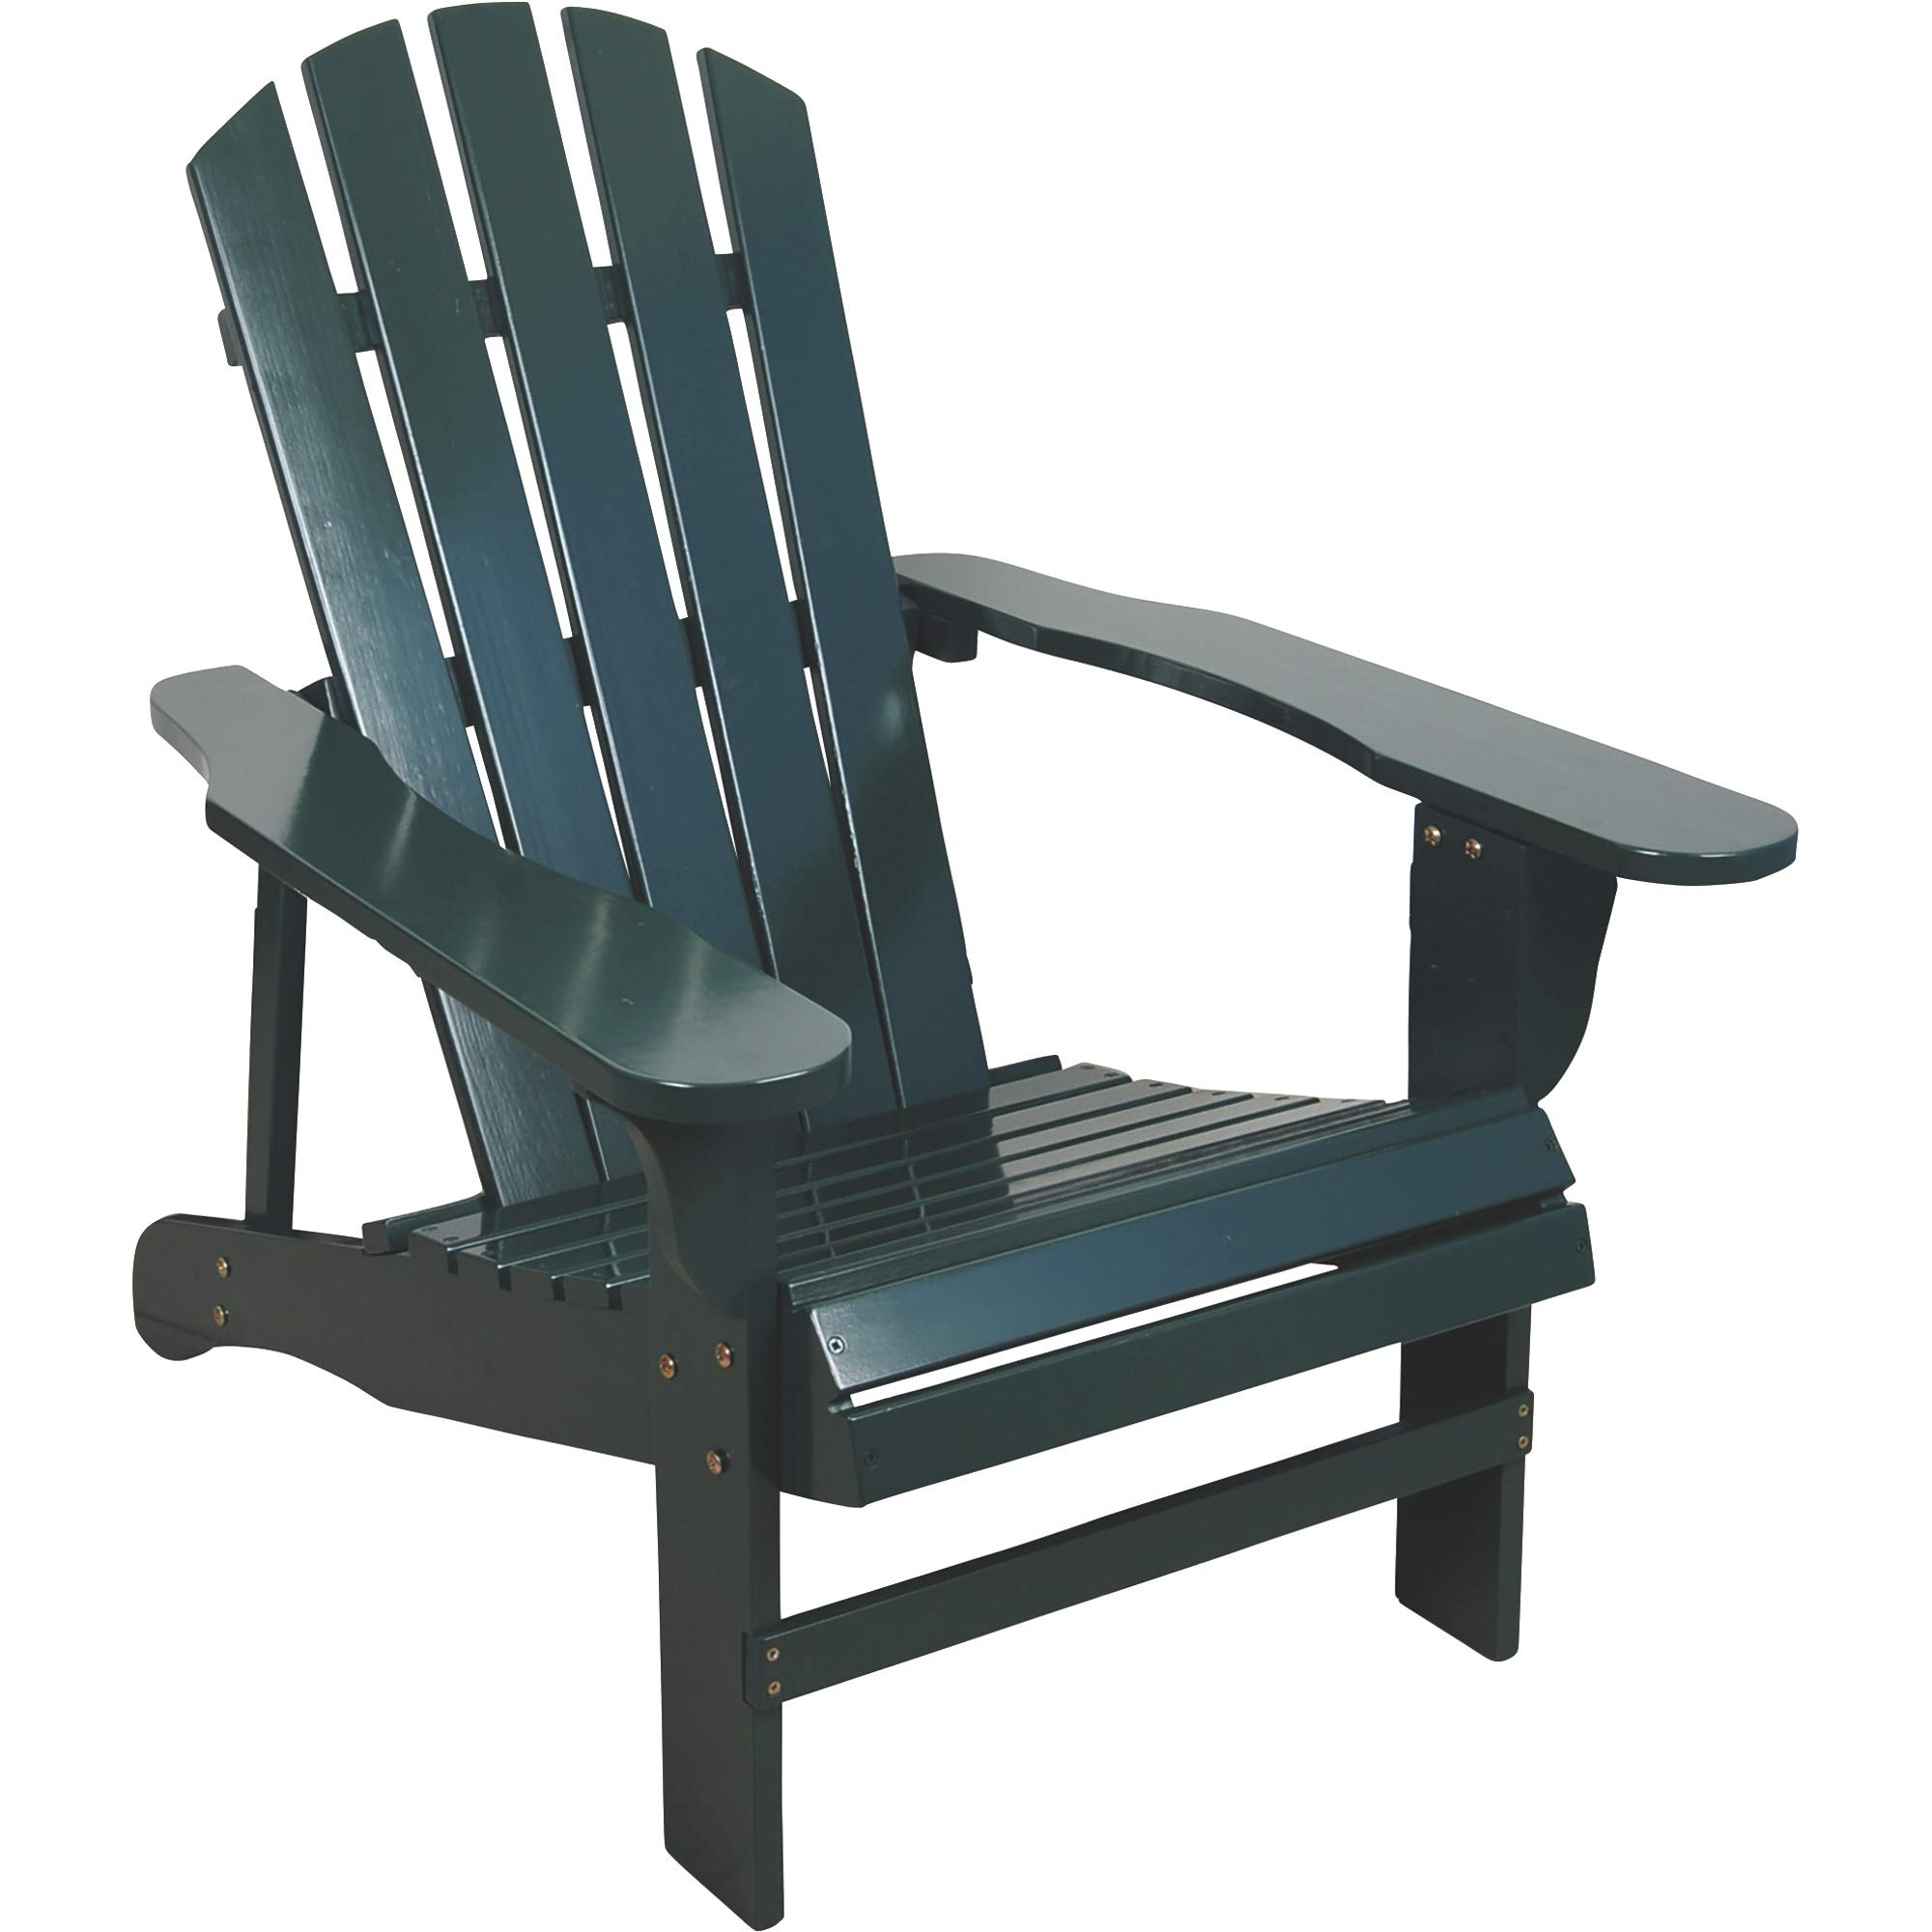 Leigh Country Adirondack Chair, Hunter Green by Leigh Country